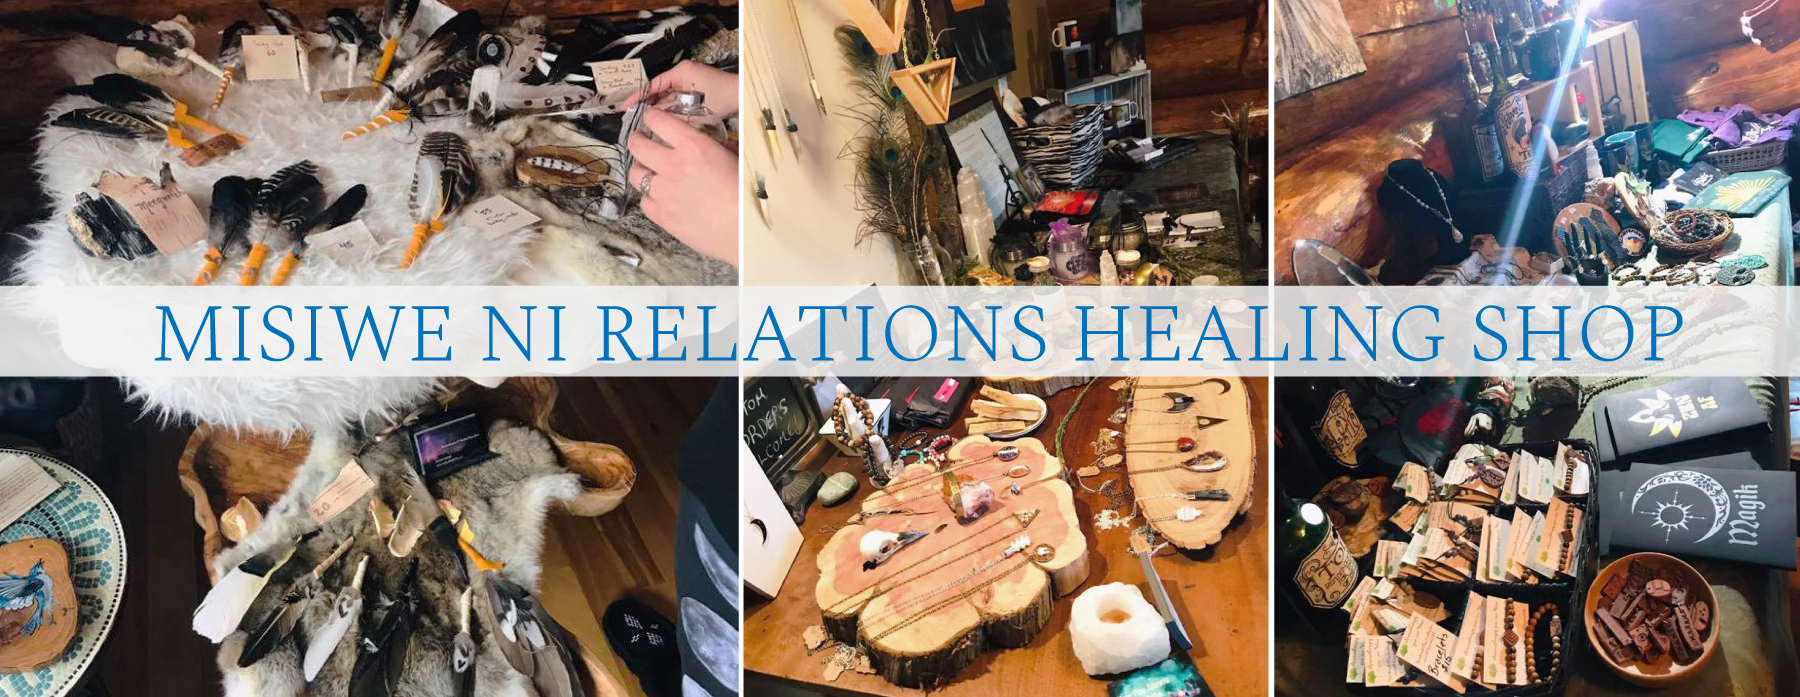 Jenny Sutherland, Misiwe Ni Relations Healing Lodge, Educator, Healer, Visionary, Caretaker, Indigenous Artist, First Nations, Indigenous Arts Collective of Canada, Pass The Feather